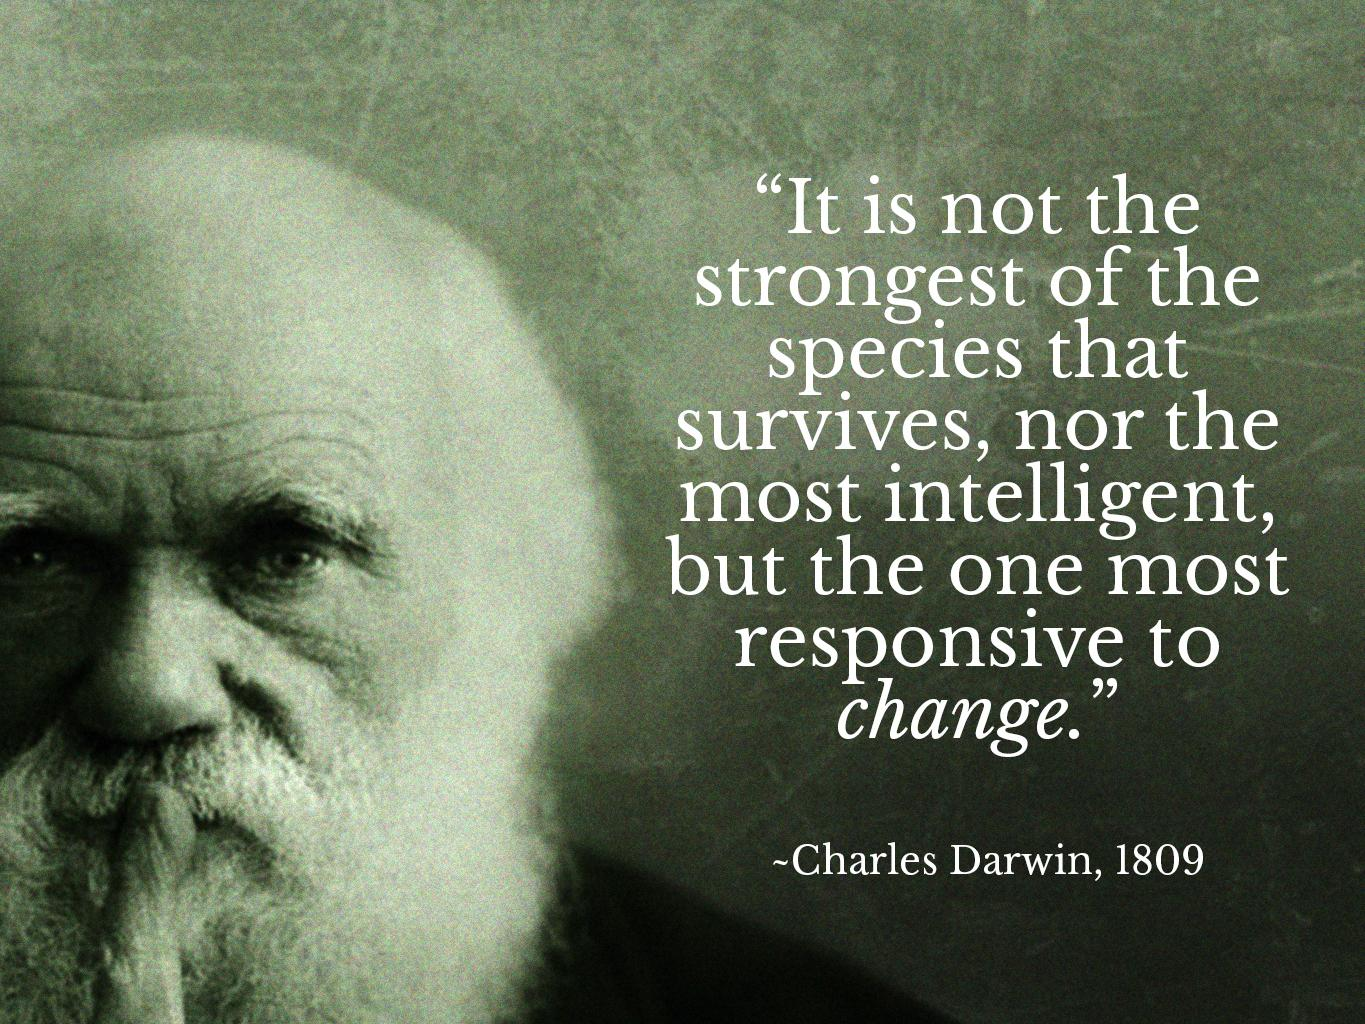 195312148-charles-darwin-quote